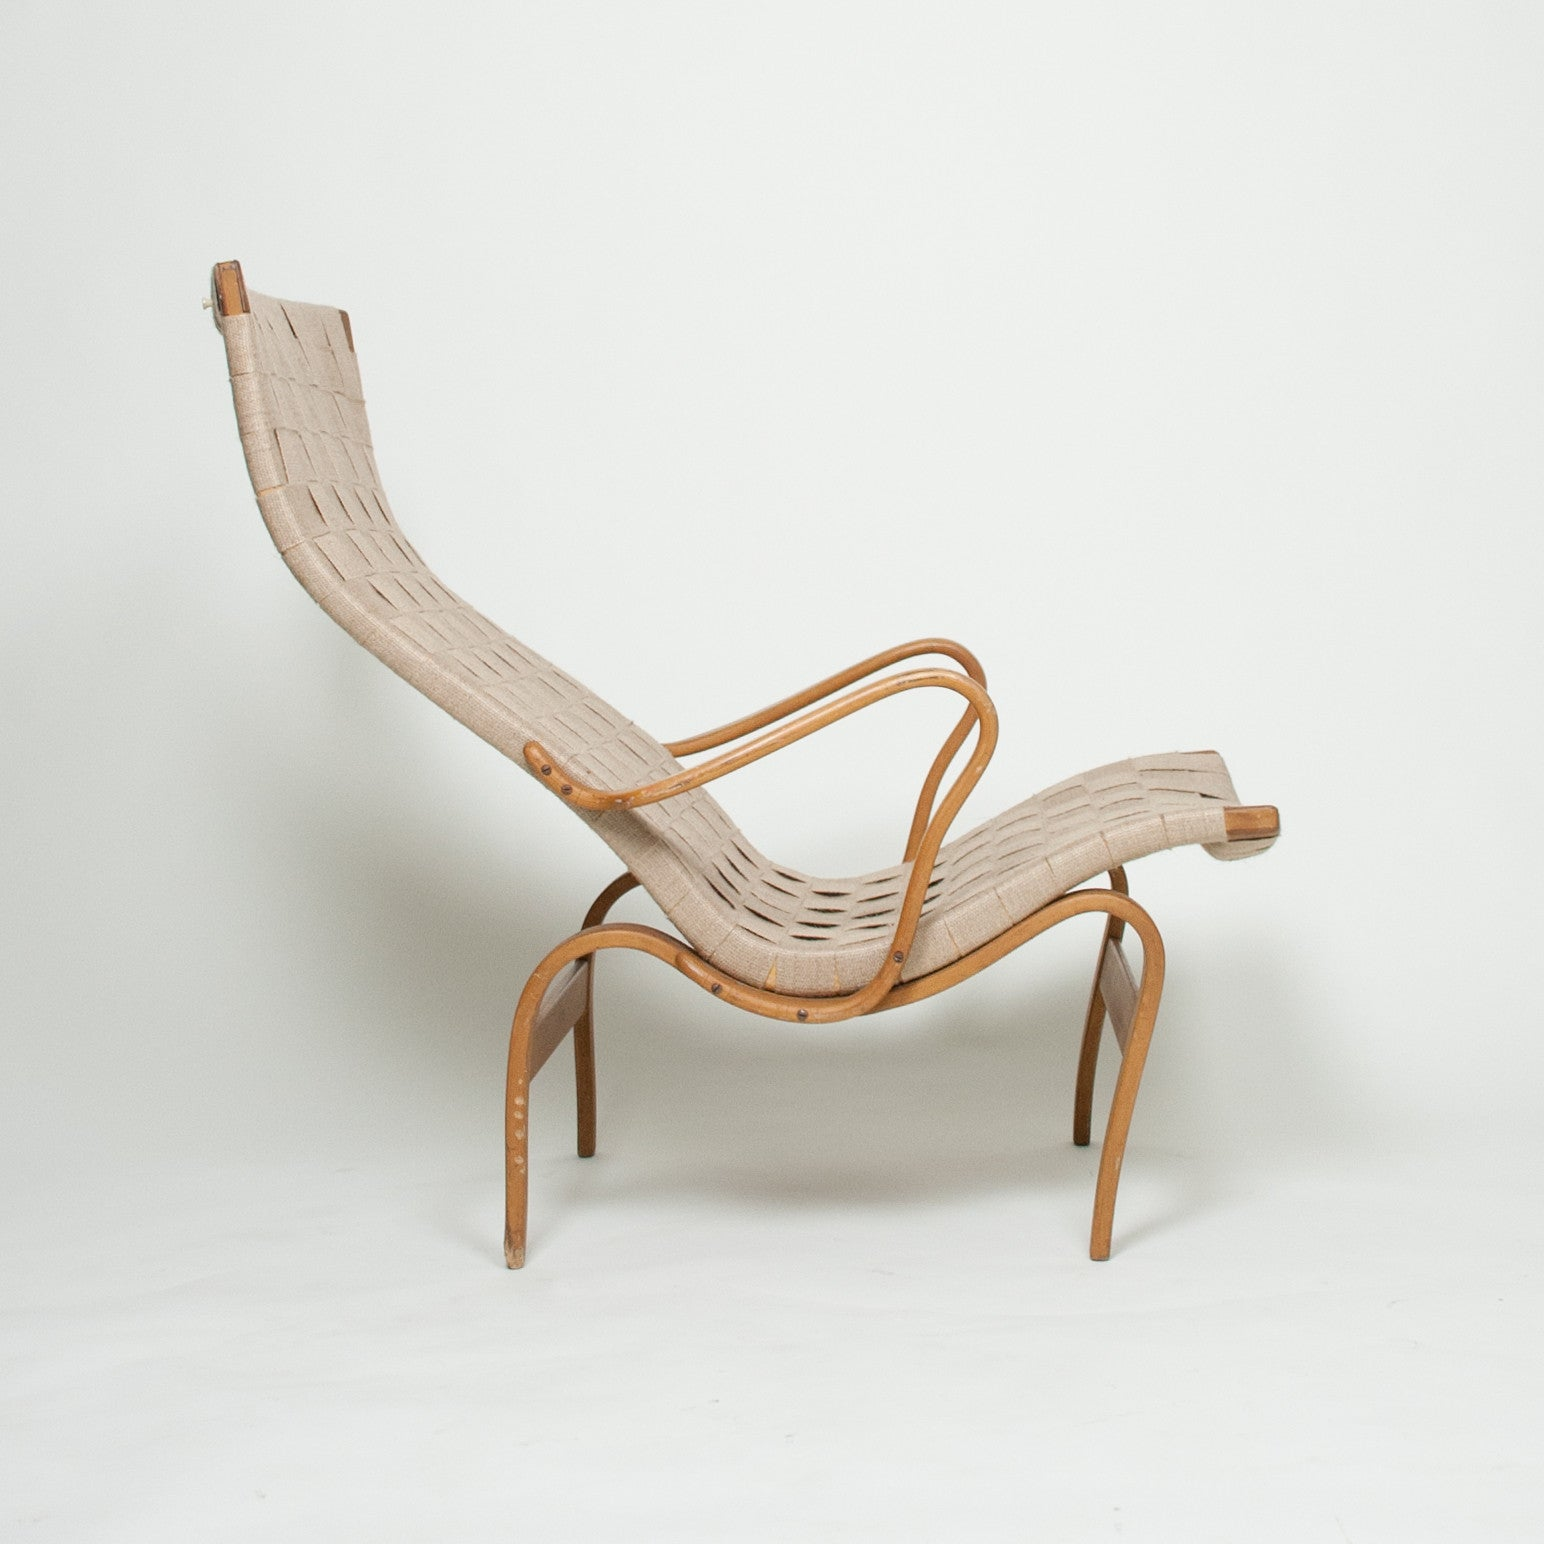 SOLD Bruno Mathsson Pernilla Lounge Chair Karl Mathsson Sweden